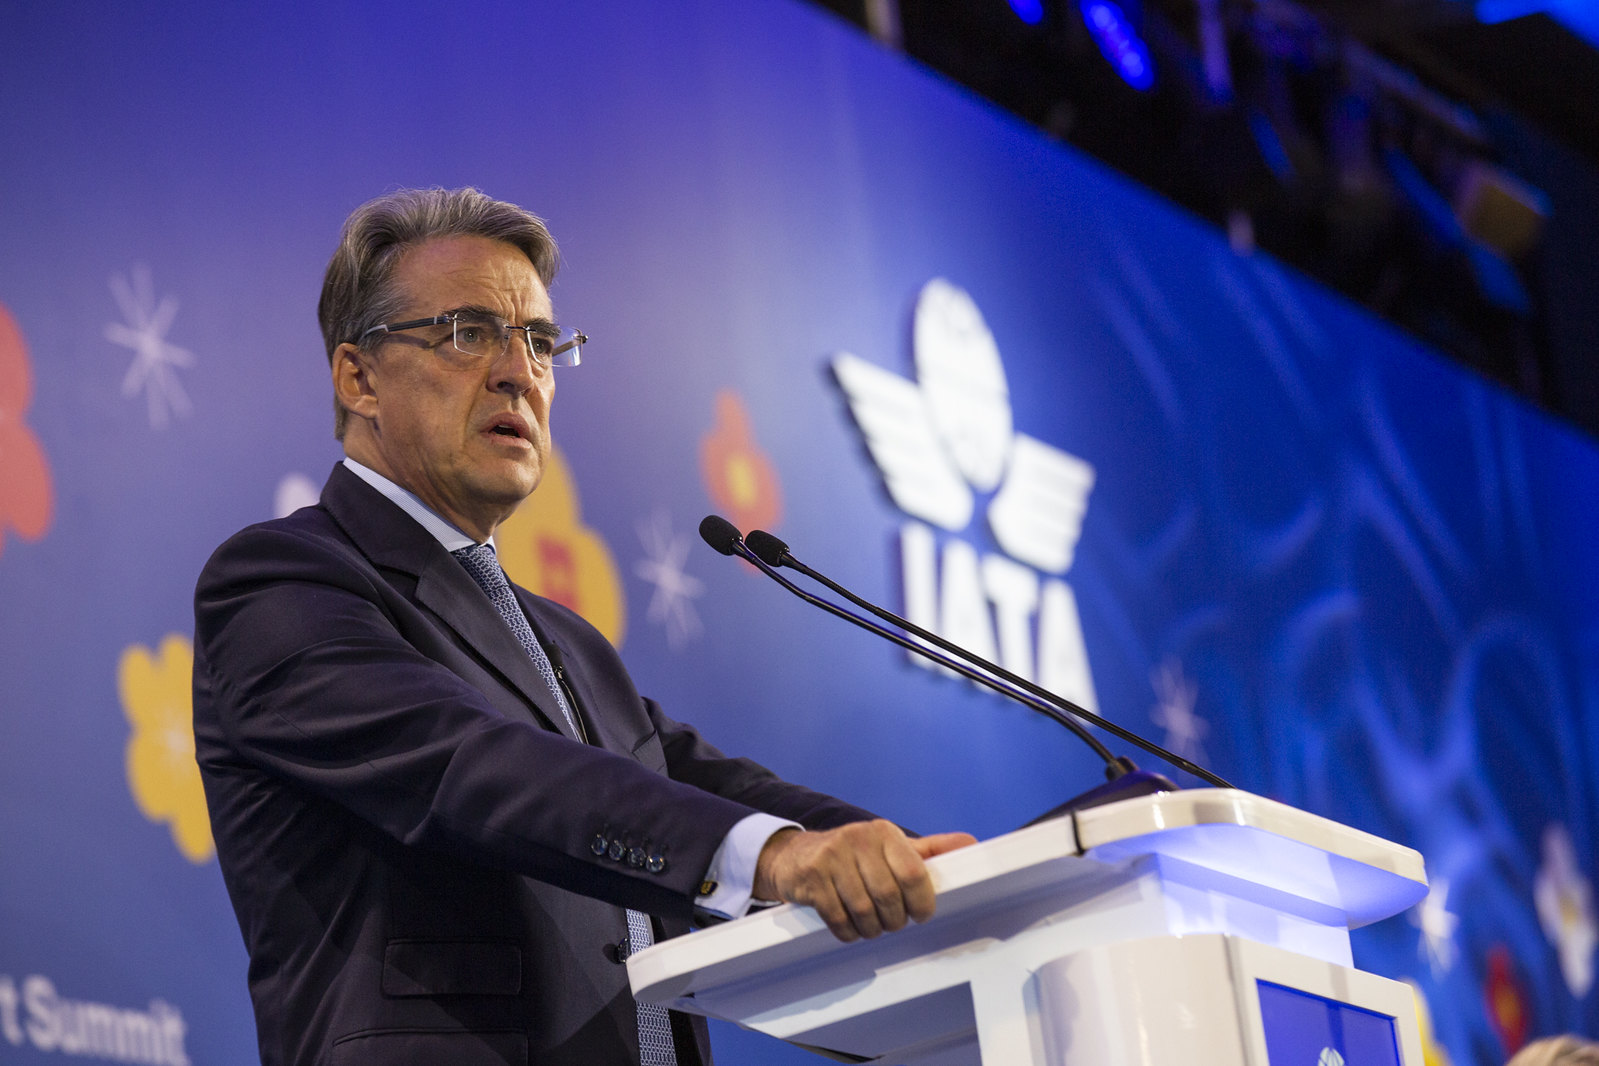 Remarks of Alexandre de Juniac at the IATA Media Briefing on COVID-19